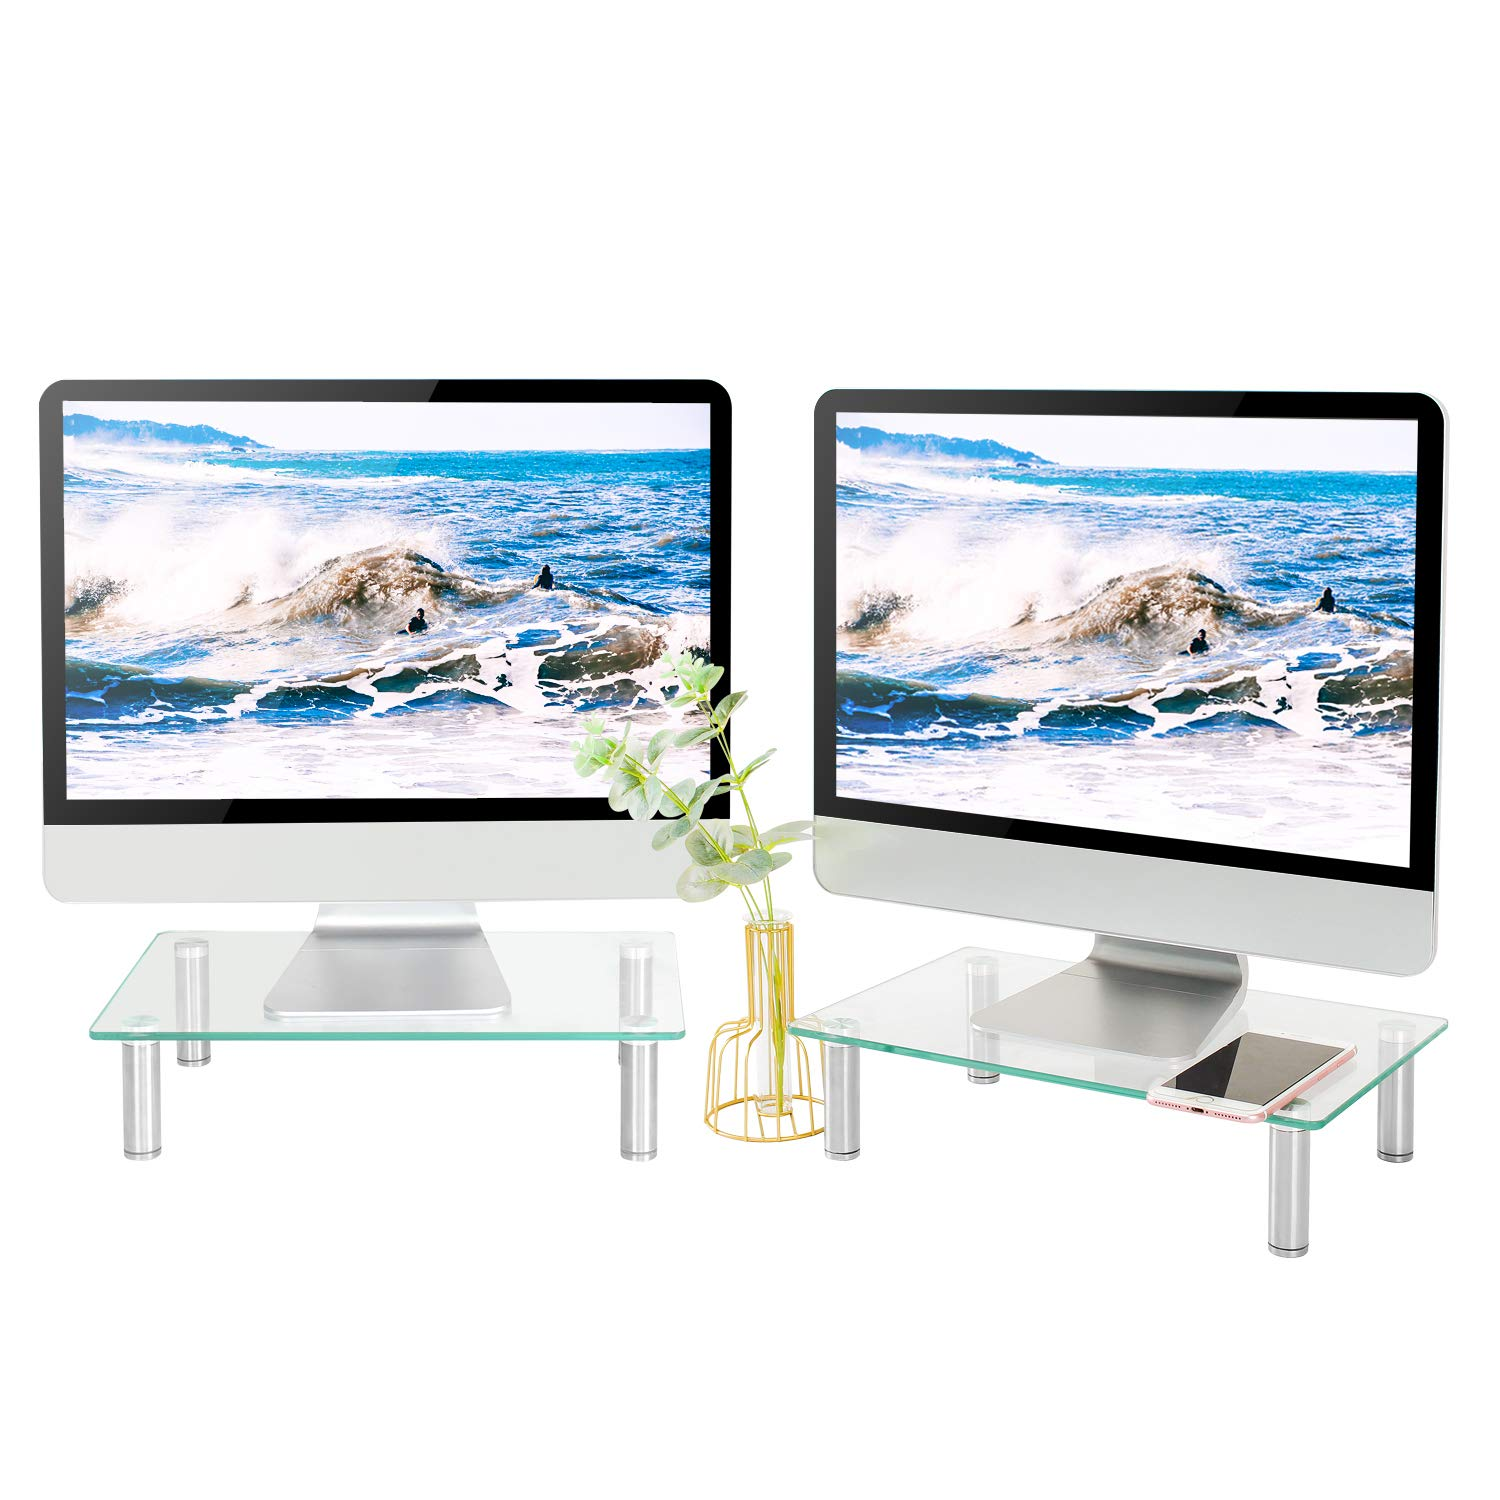 5Rcom Computer Dual Monitor Stand Clear Tempered Glass Laptop Riser,Multi Desktop Stand with Height Adjustable Legs for Flat Screen LCD LED TV, Laptop/Notebook|2 Pack